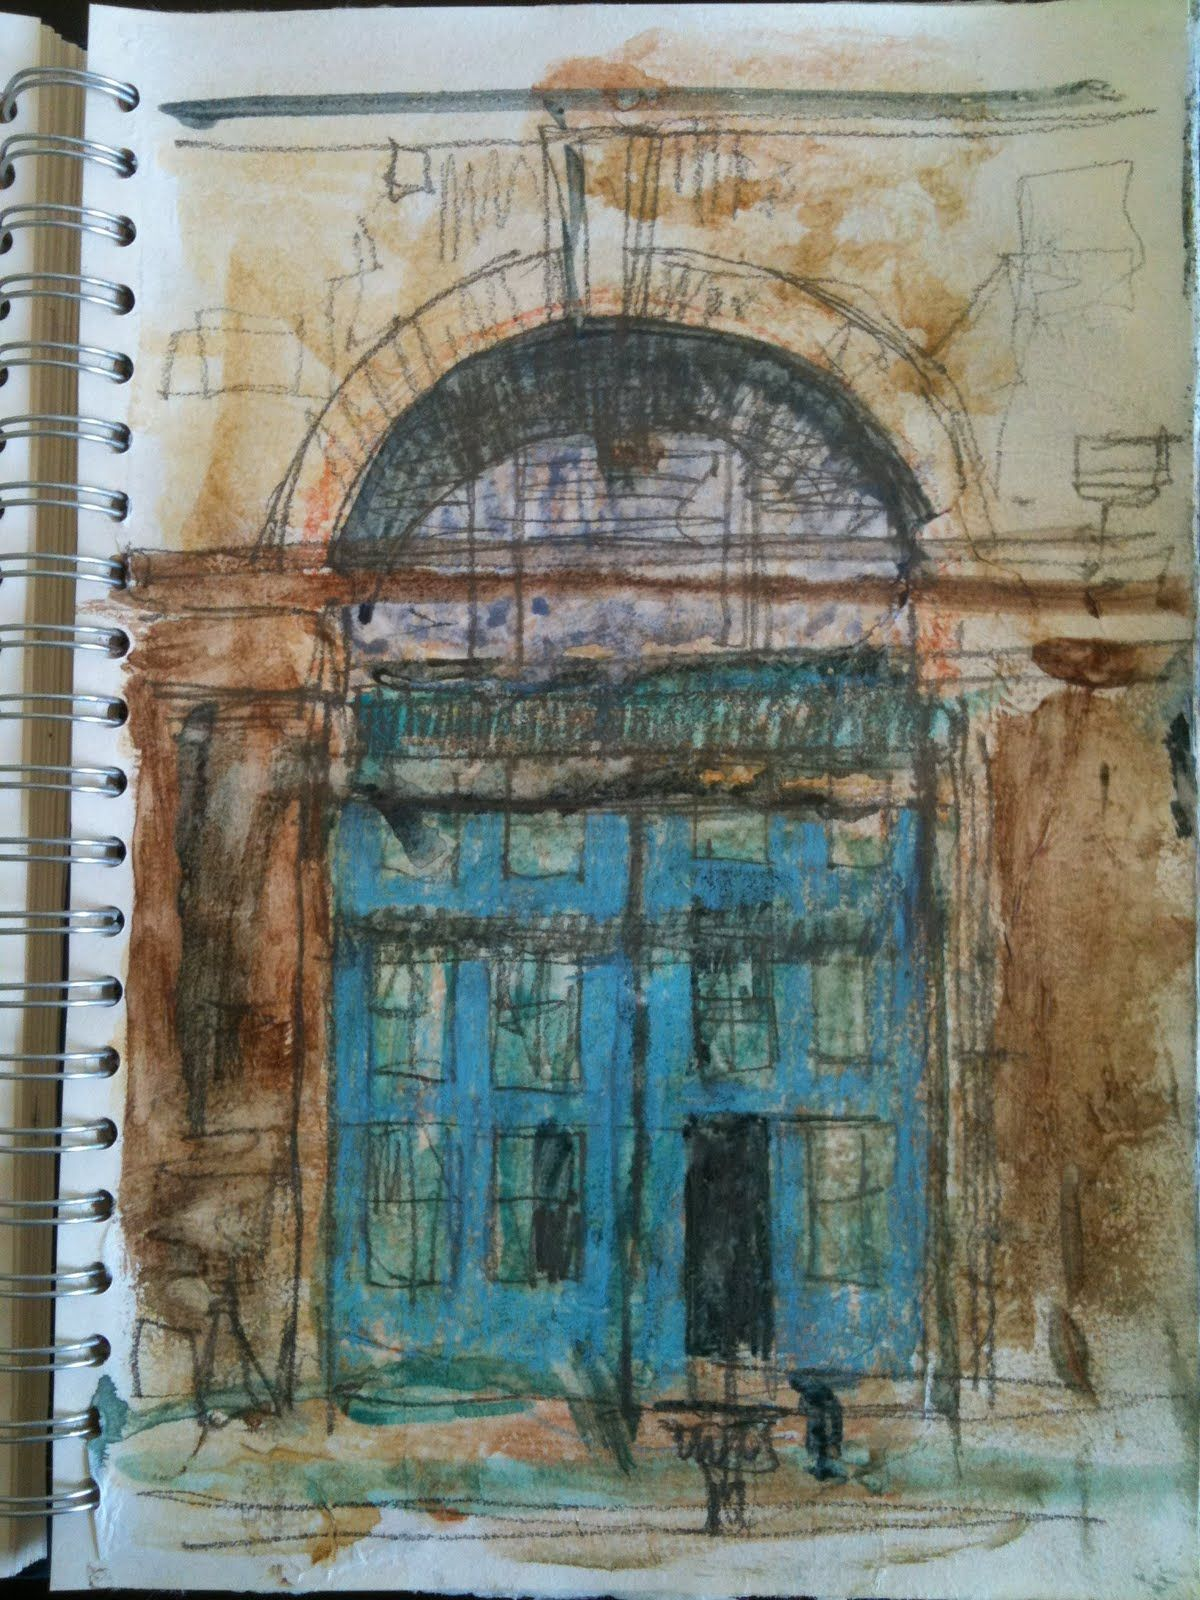 Door pencil drawing -  Urbansketch Blue Door Pencil Pen And Watercolor Sketch By Angus Mcewan